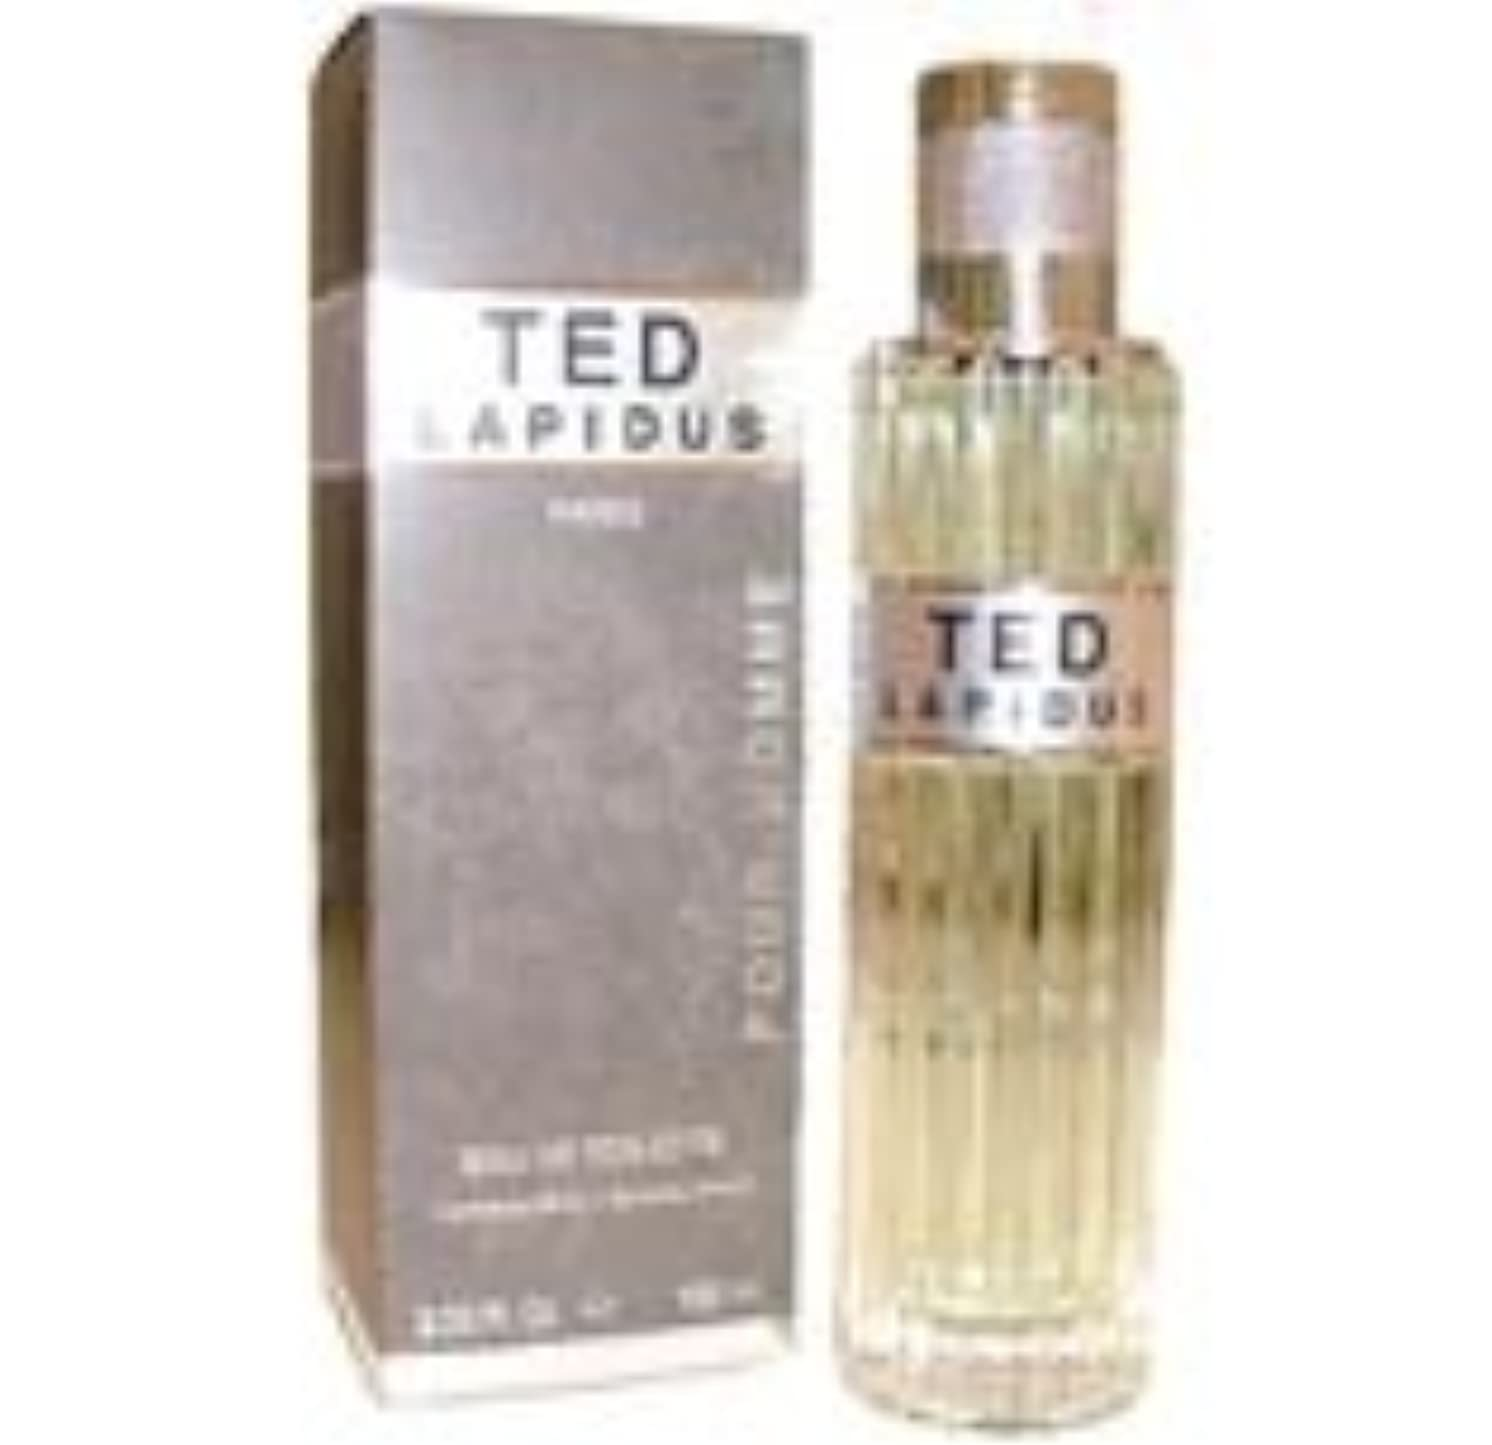 ピクニック誓い科学的Ted (テッド) 1.7 oz (50ml) EDT Spray by Ted Rapidus for Men